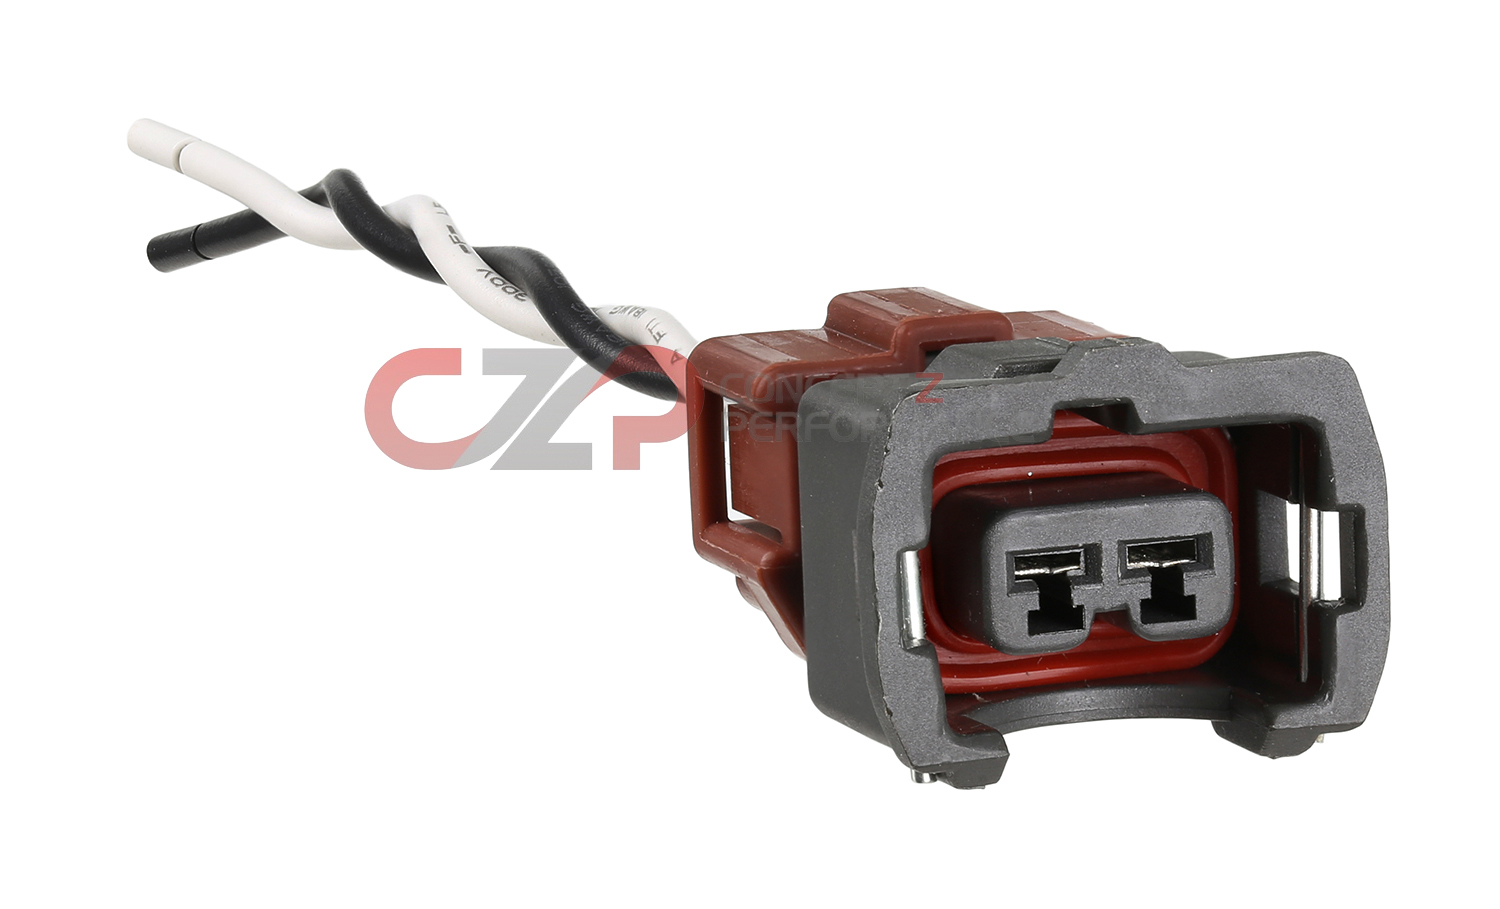 Wiring Specialties Czp Fuel Injector Connector Early Style Nissan 1989 300zx Filter Removal Options